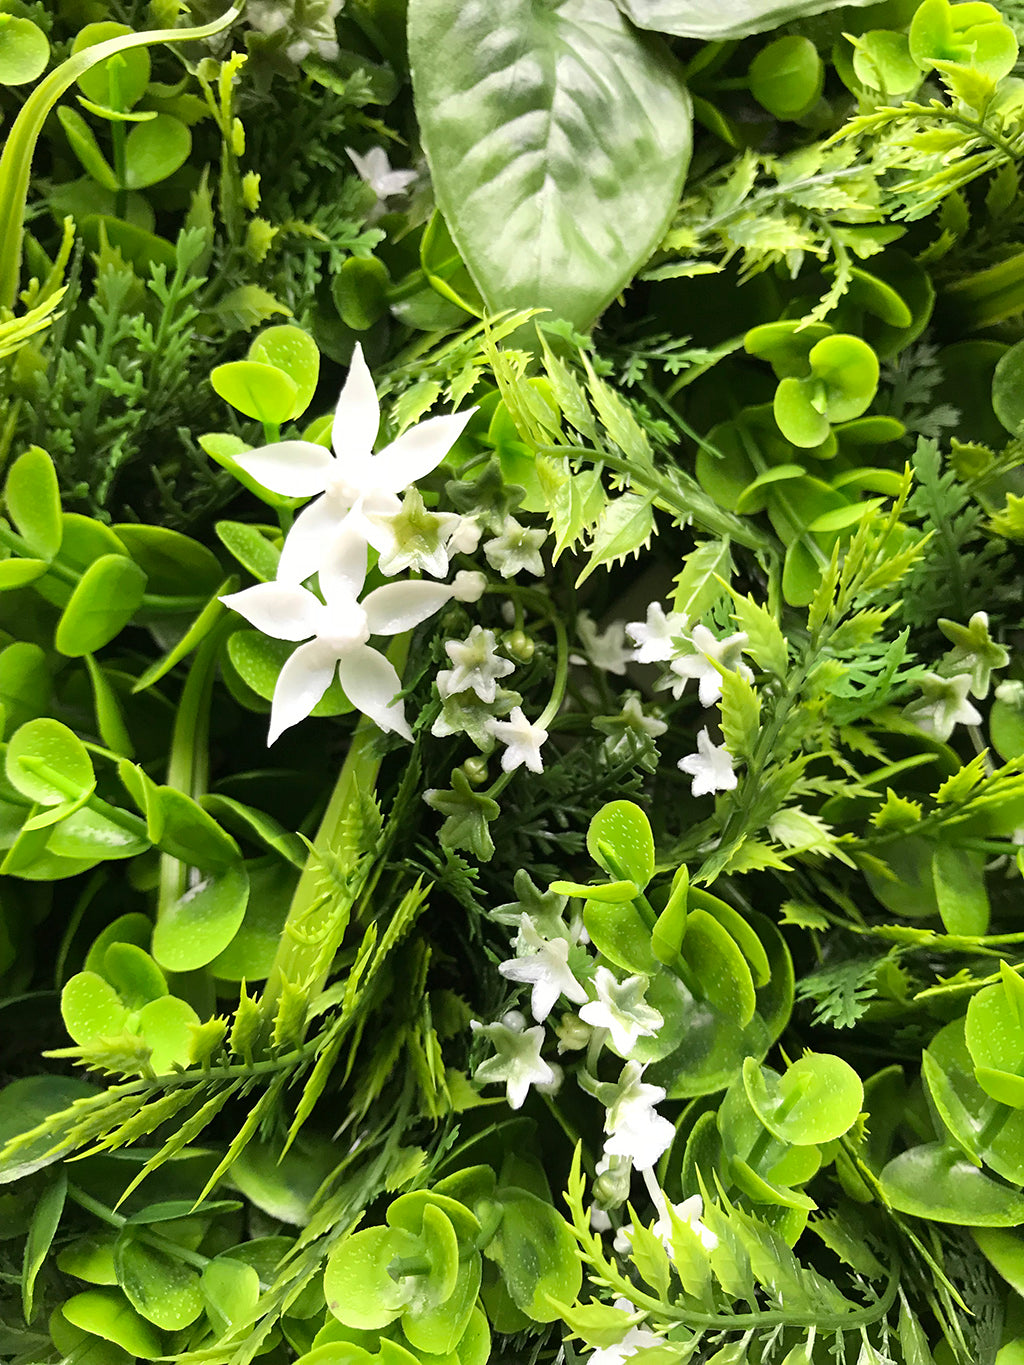 Artificial Green Wall Mixed Plant Panel With White Flowers 100x100 Cm Greenplantwalls Co Uk